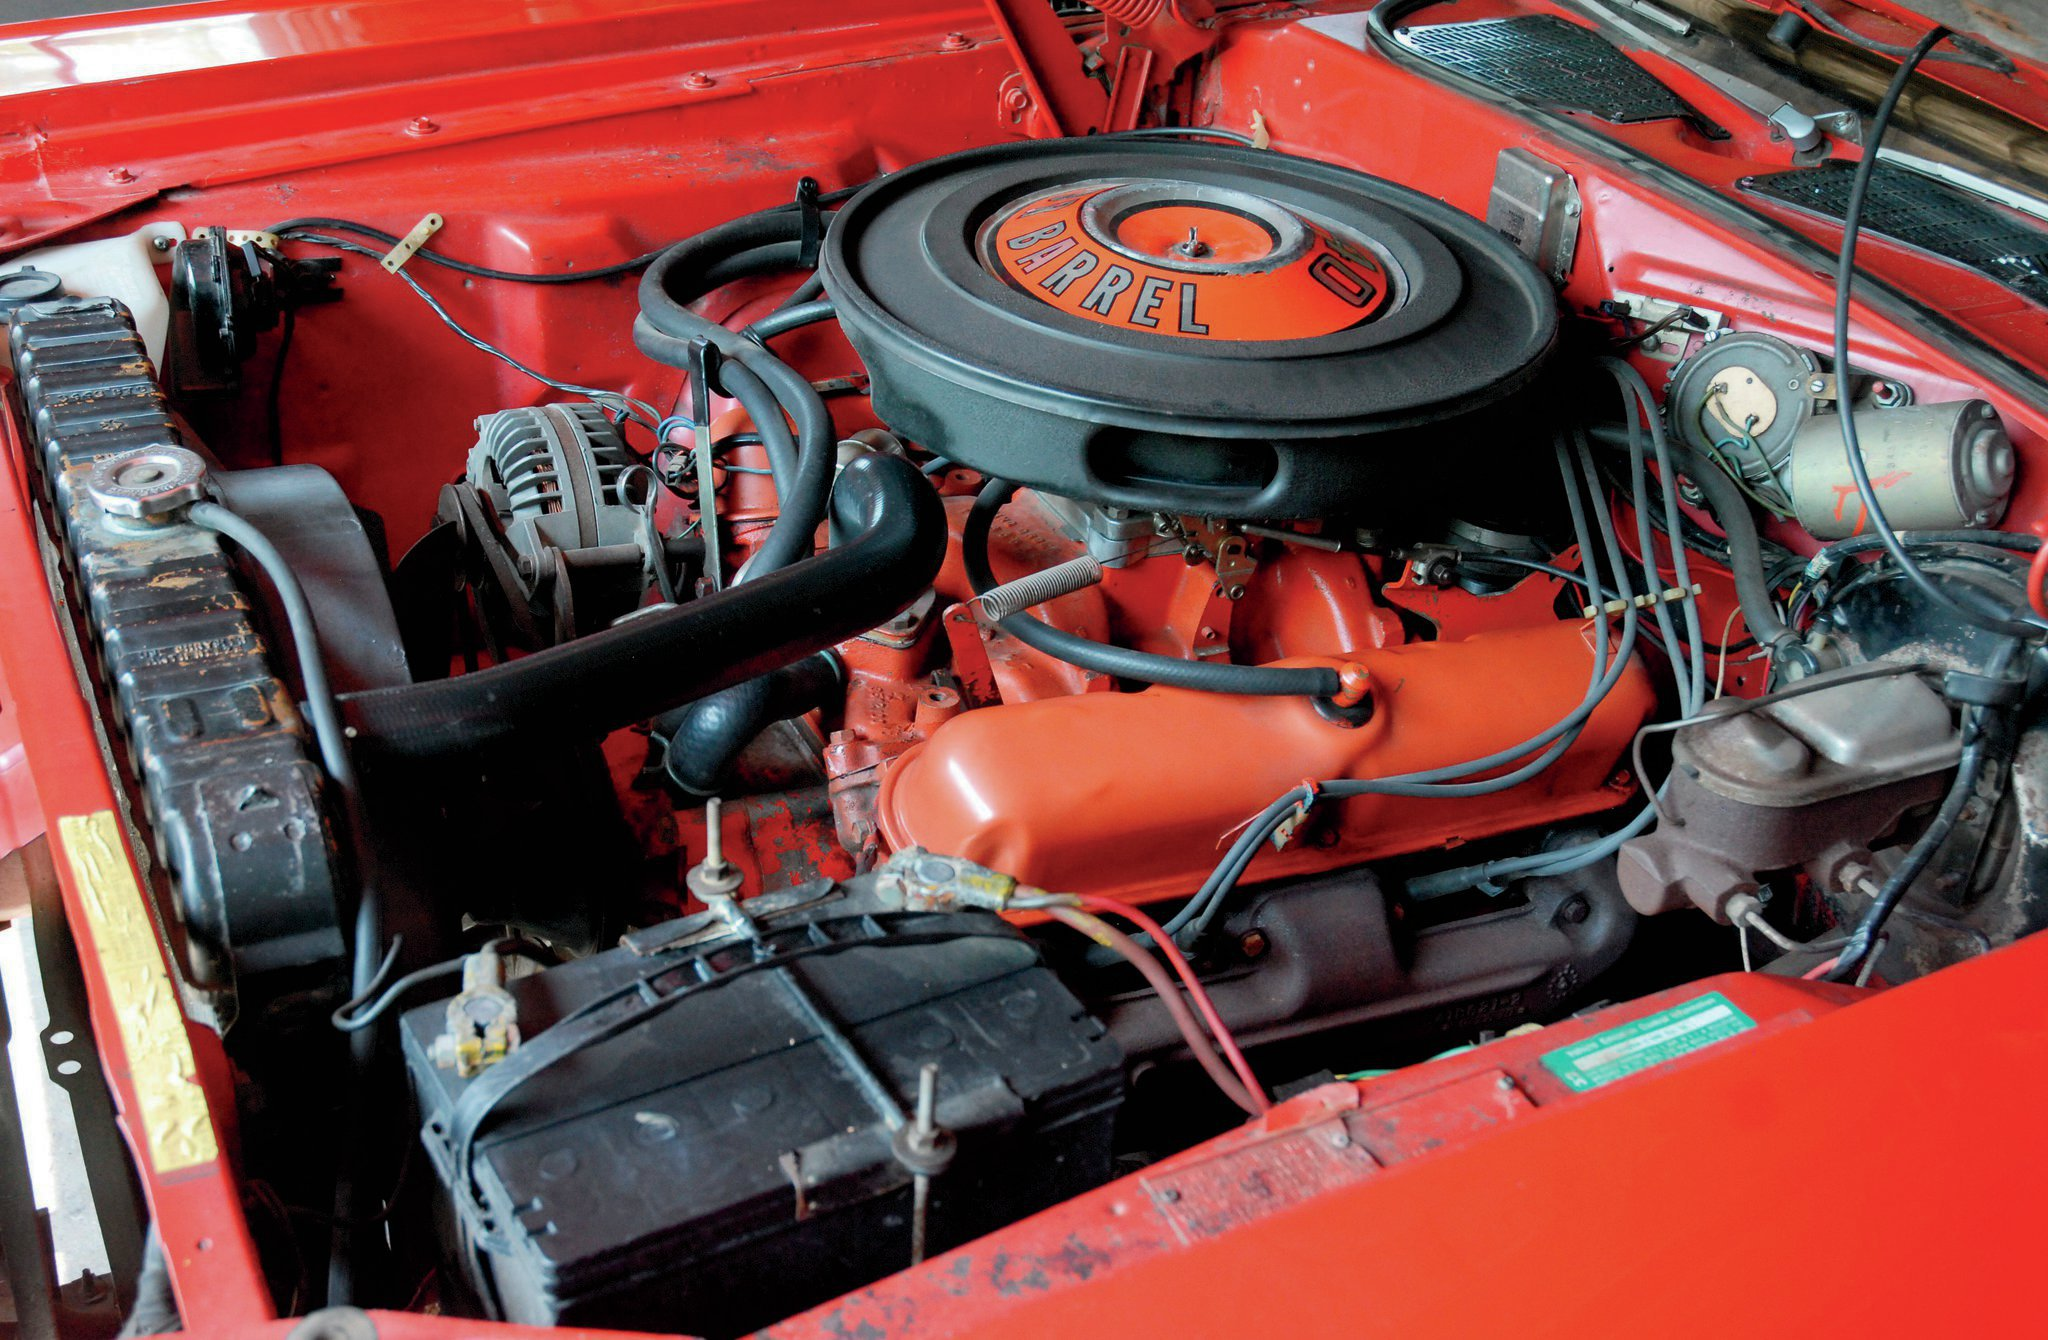 The Challenger's engine compartment still holds the original 340ci small-block. It is backed by an A833 four-speed manual rowed by a Hurst Pistol-Grip shifter.